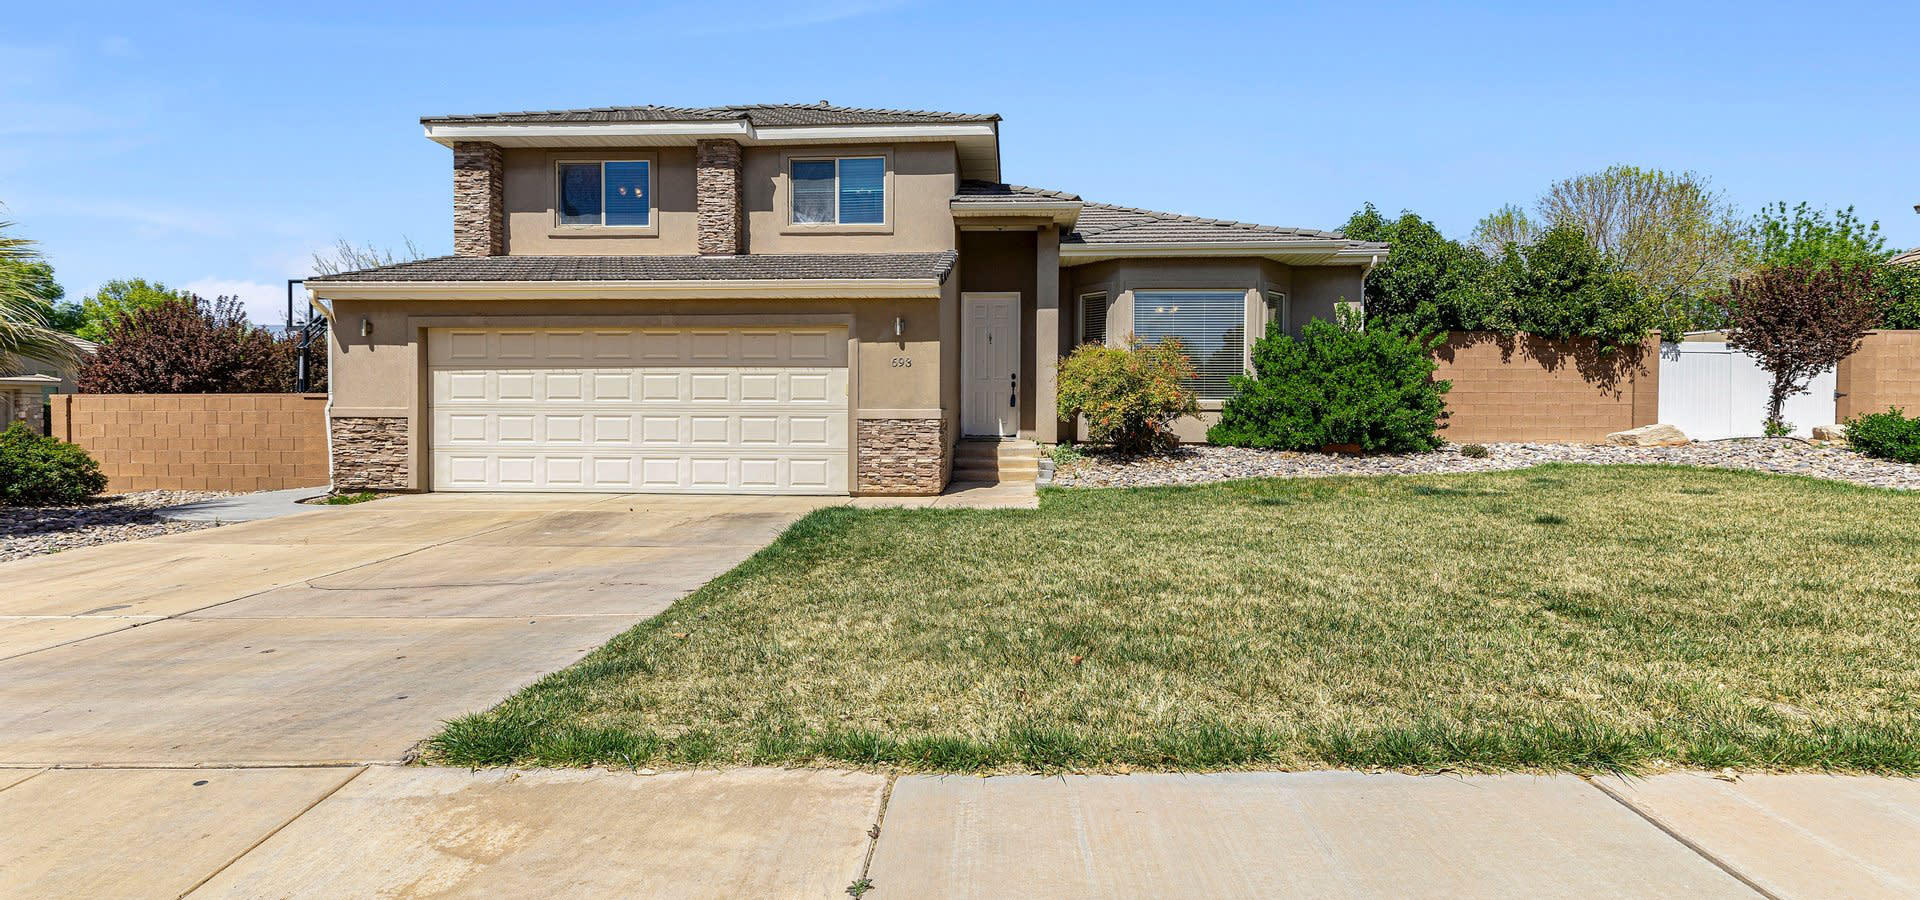 693 E Castle Stone Dr, Washington Ut 84780